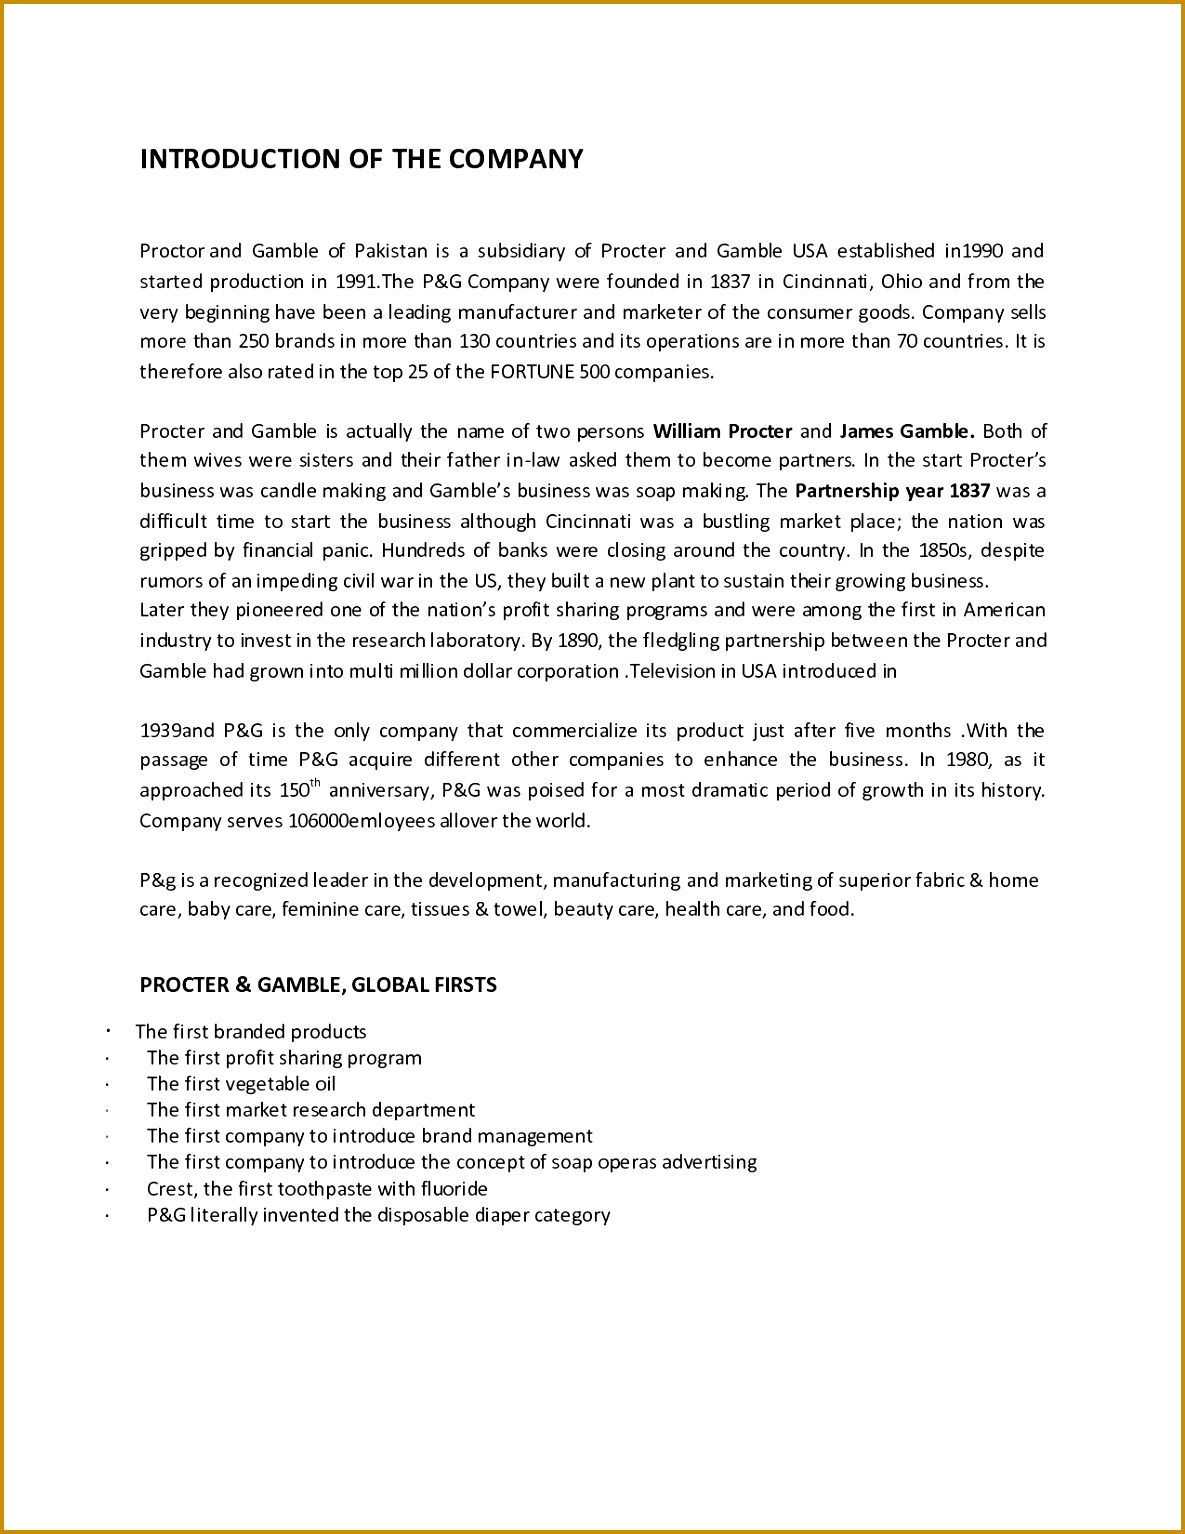 Resume Cover Letter Examples Beautiful Example Cover Letter for 15341185